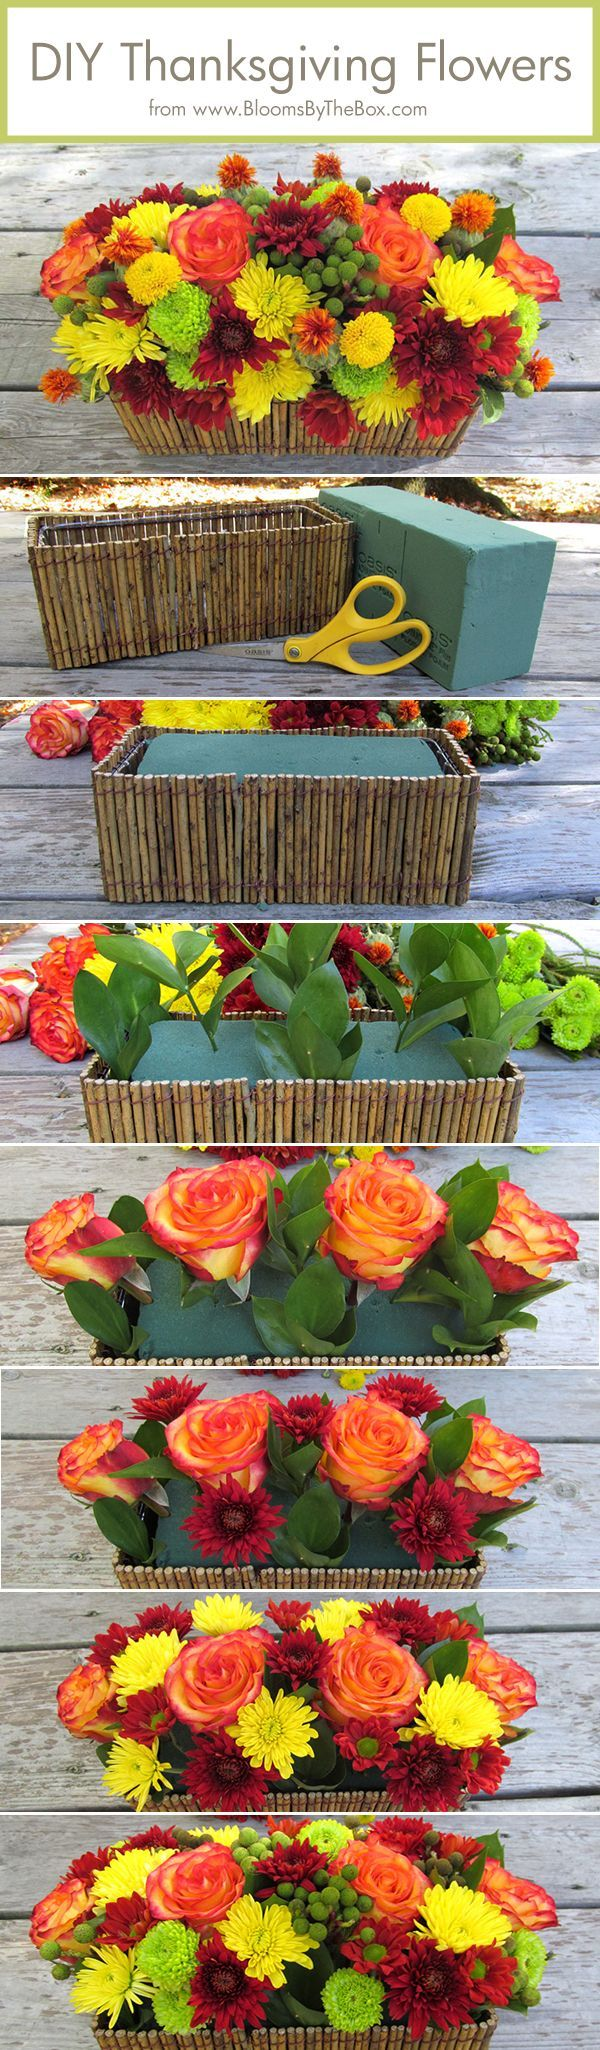 DIY Flower Turotial for Thanksgiving Decorations